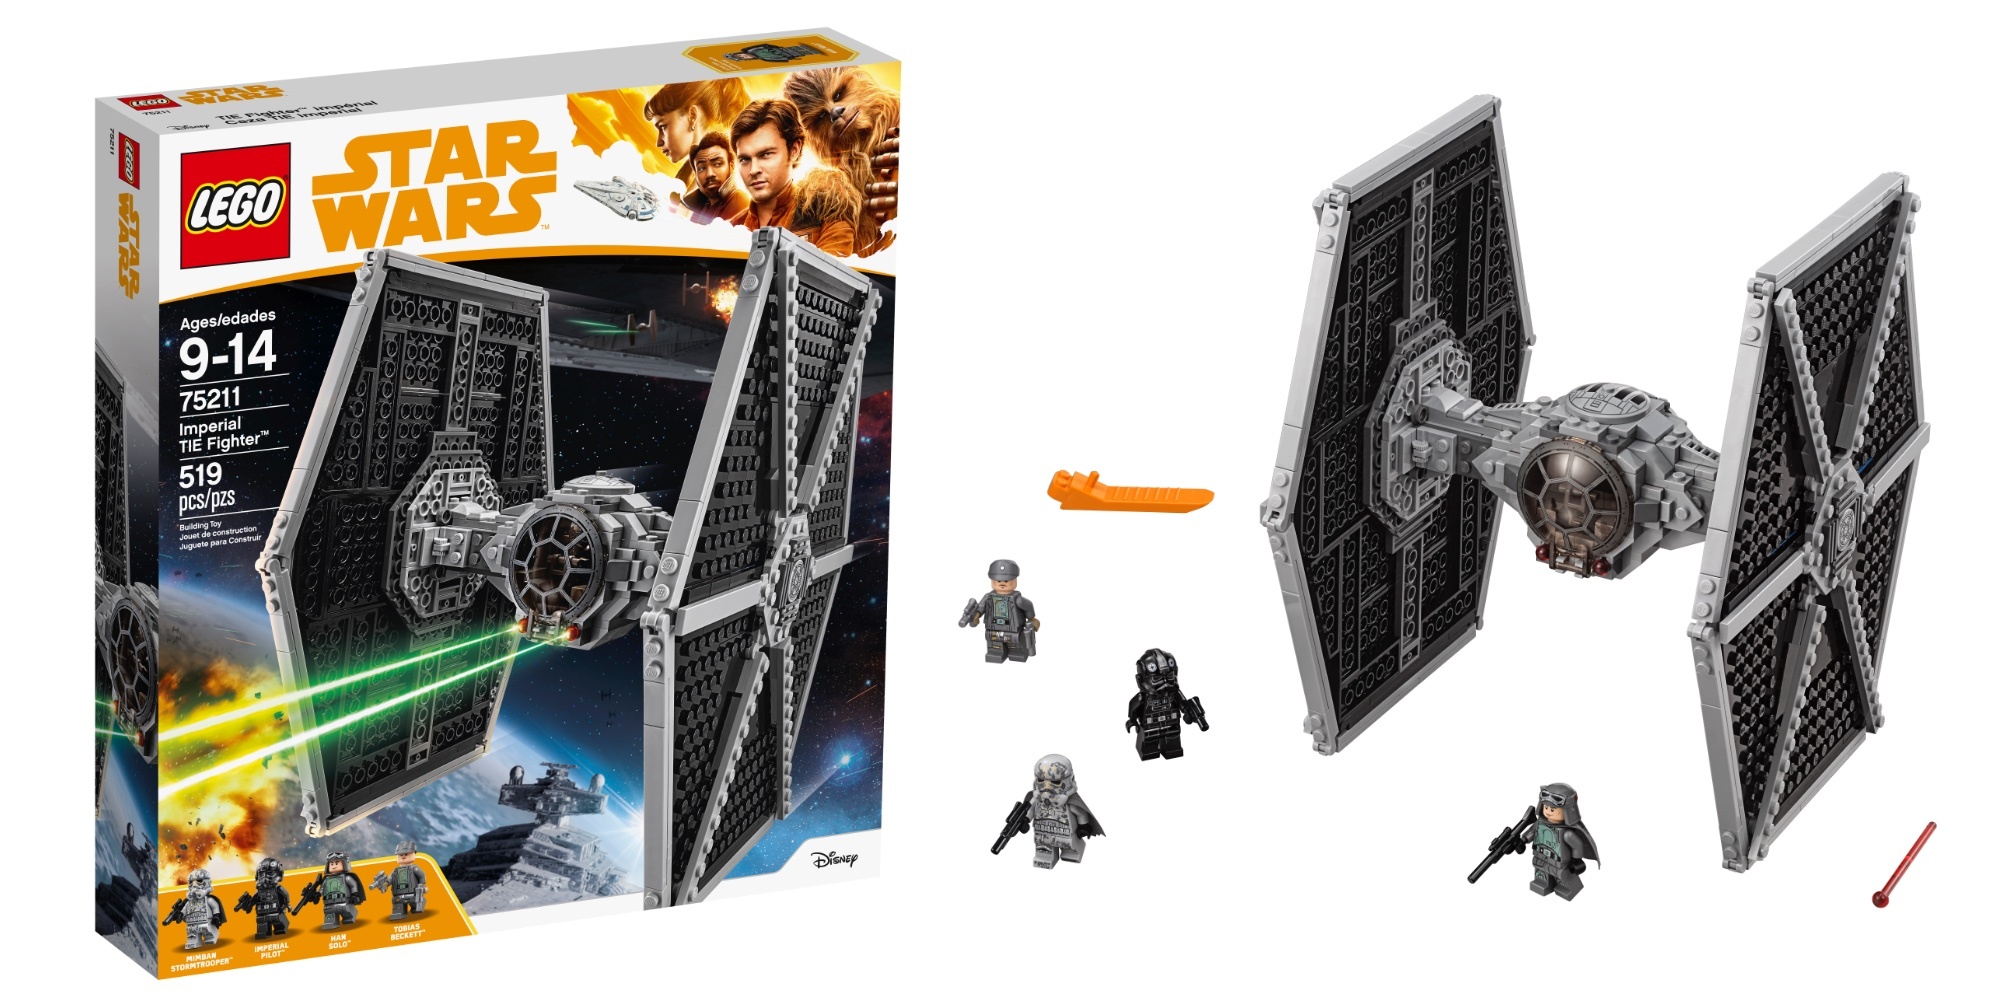 Save 25% on LEGO's Star Wars Imperial TIE Fighter at $45 shipped, plus more kits from $8